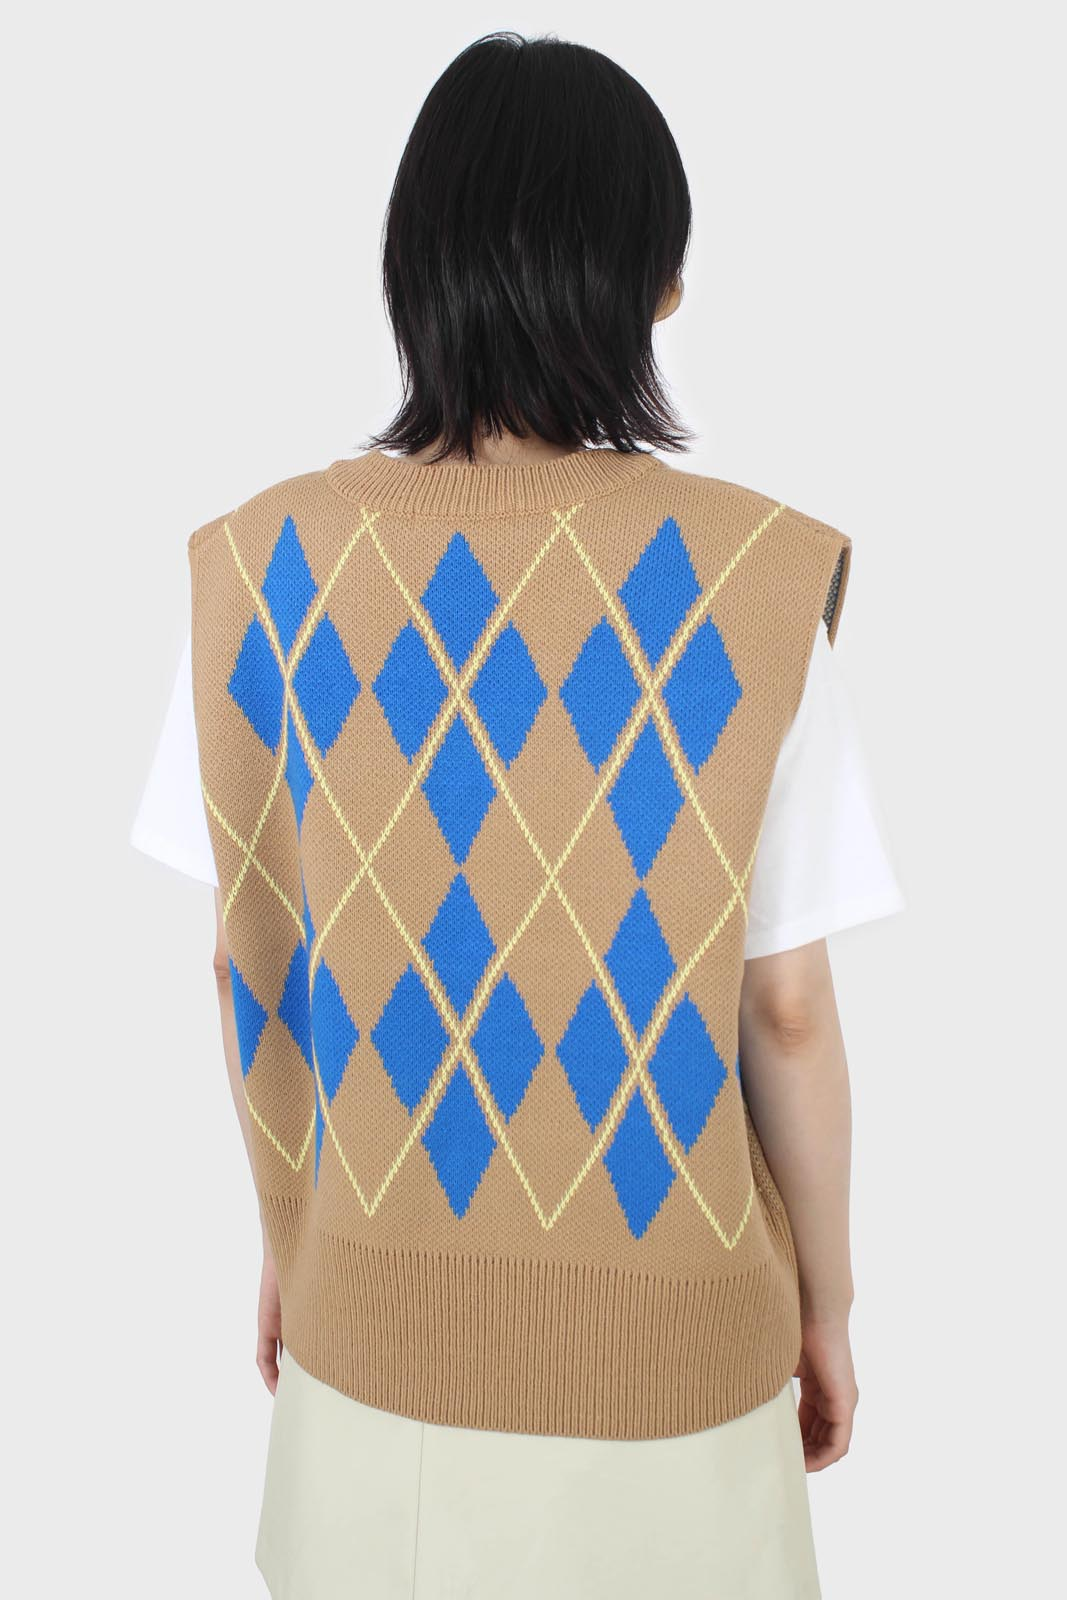 Camel and bright blue argyle sweater vest4